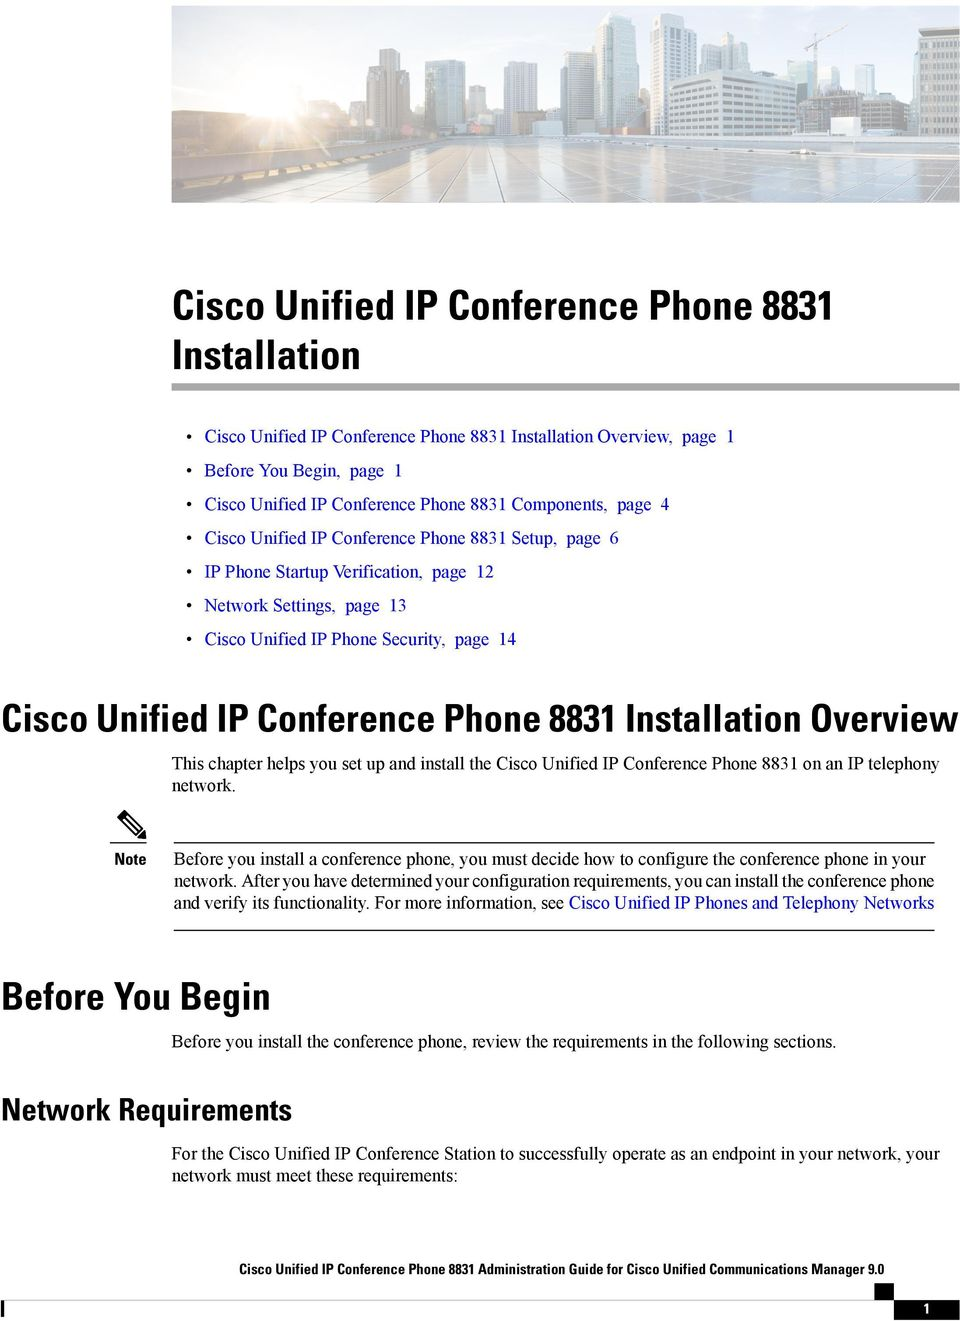 8831 Installation Overview This chapter helps you set up and install the Cisco Unified IP Conference Phone 8831 on an IP telephony network.